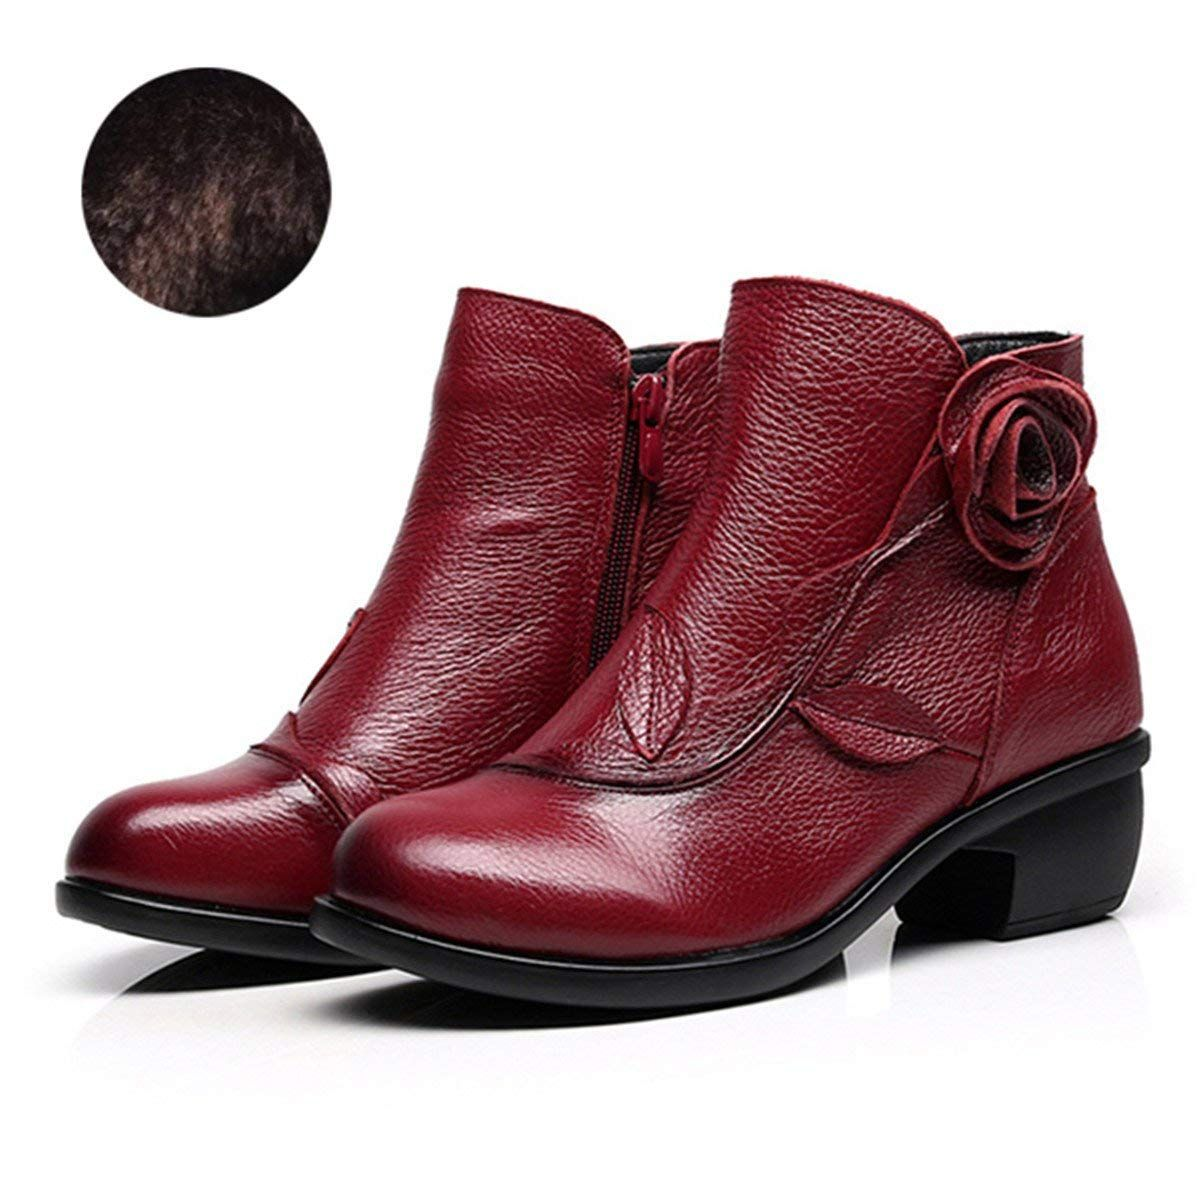 6fe70e3456cce Amazon.com | Socofy Leather Ankle Bootie, Women's Vintage Handmade ...